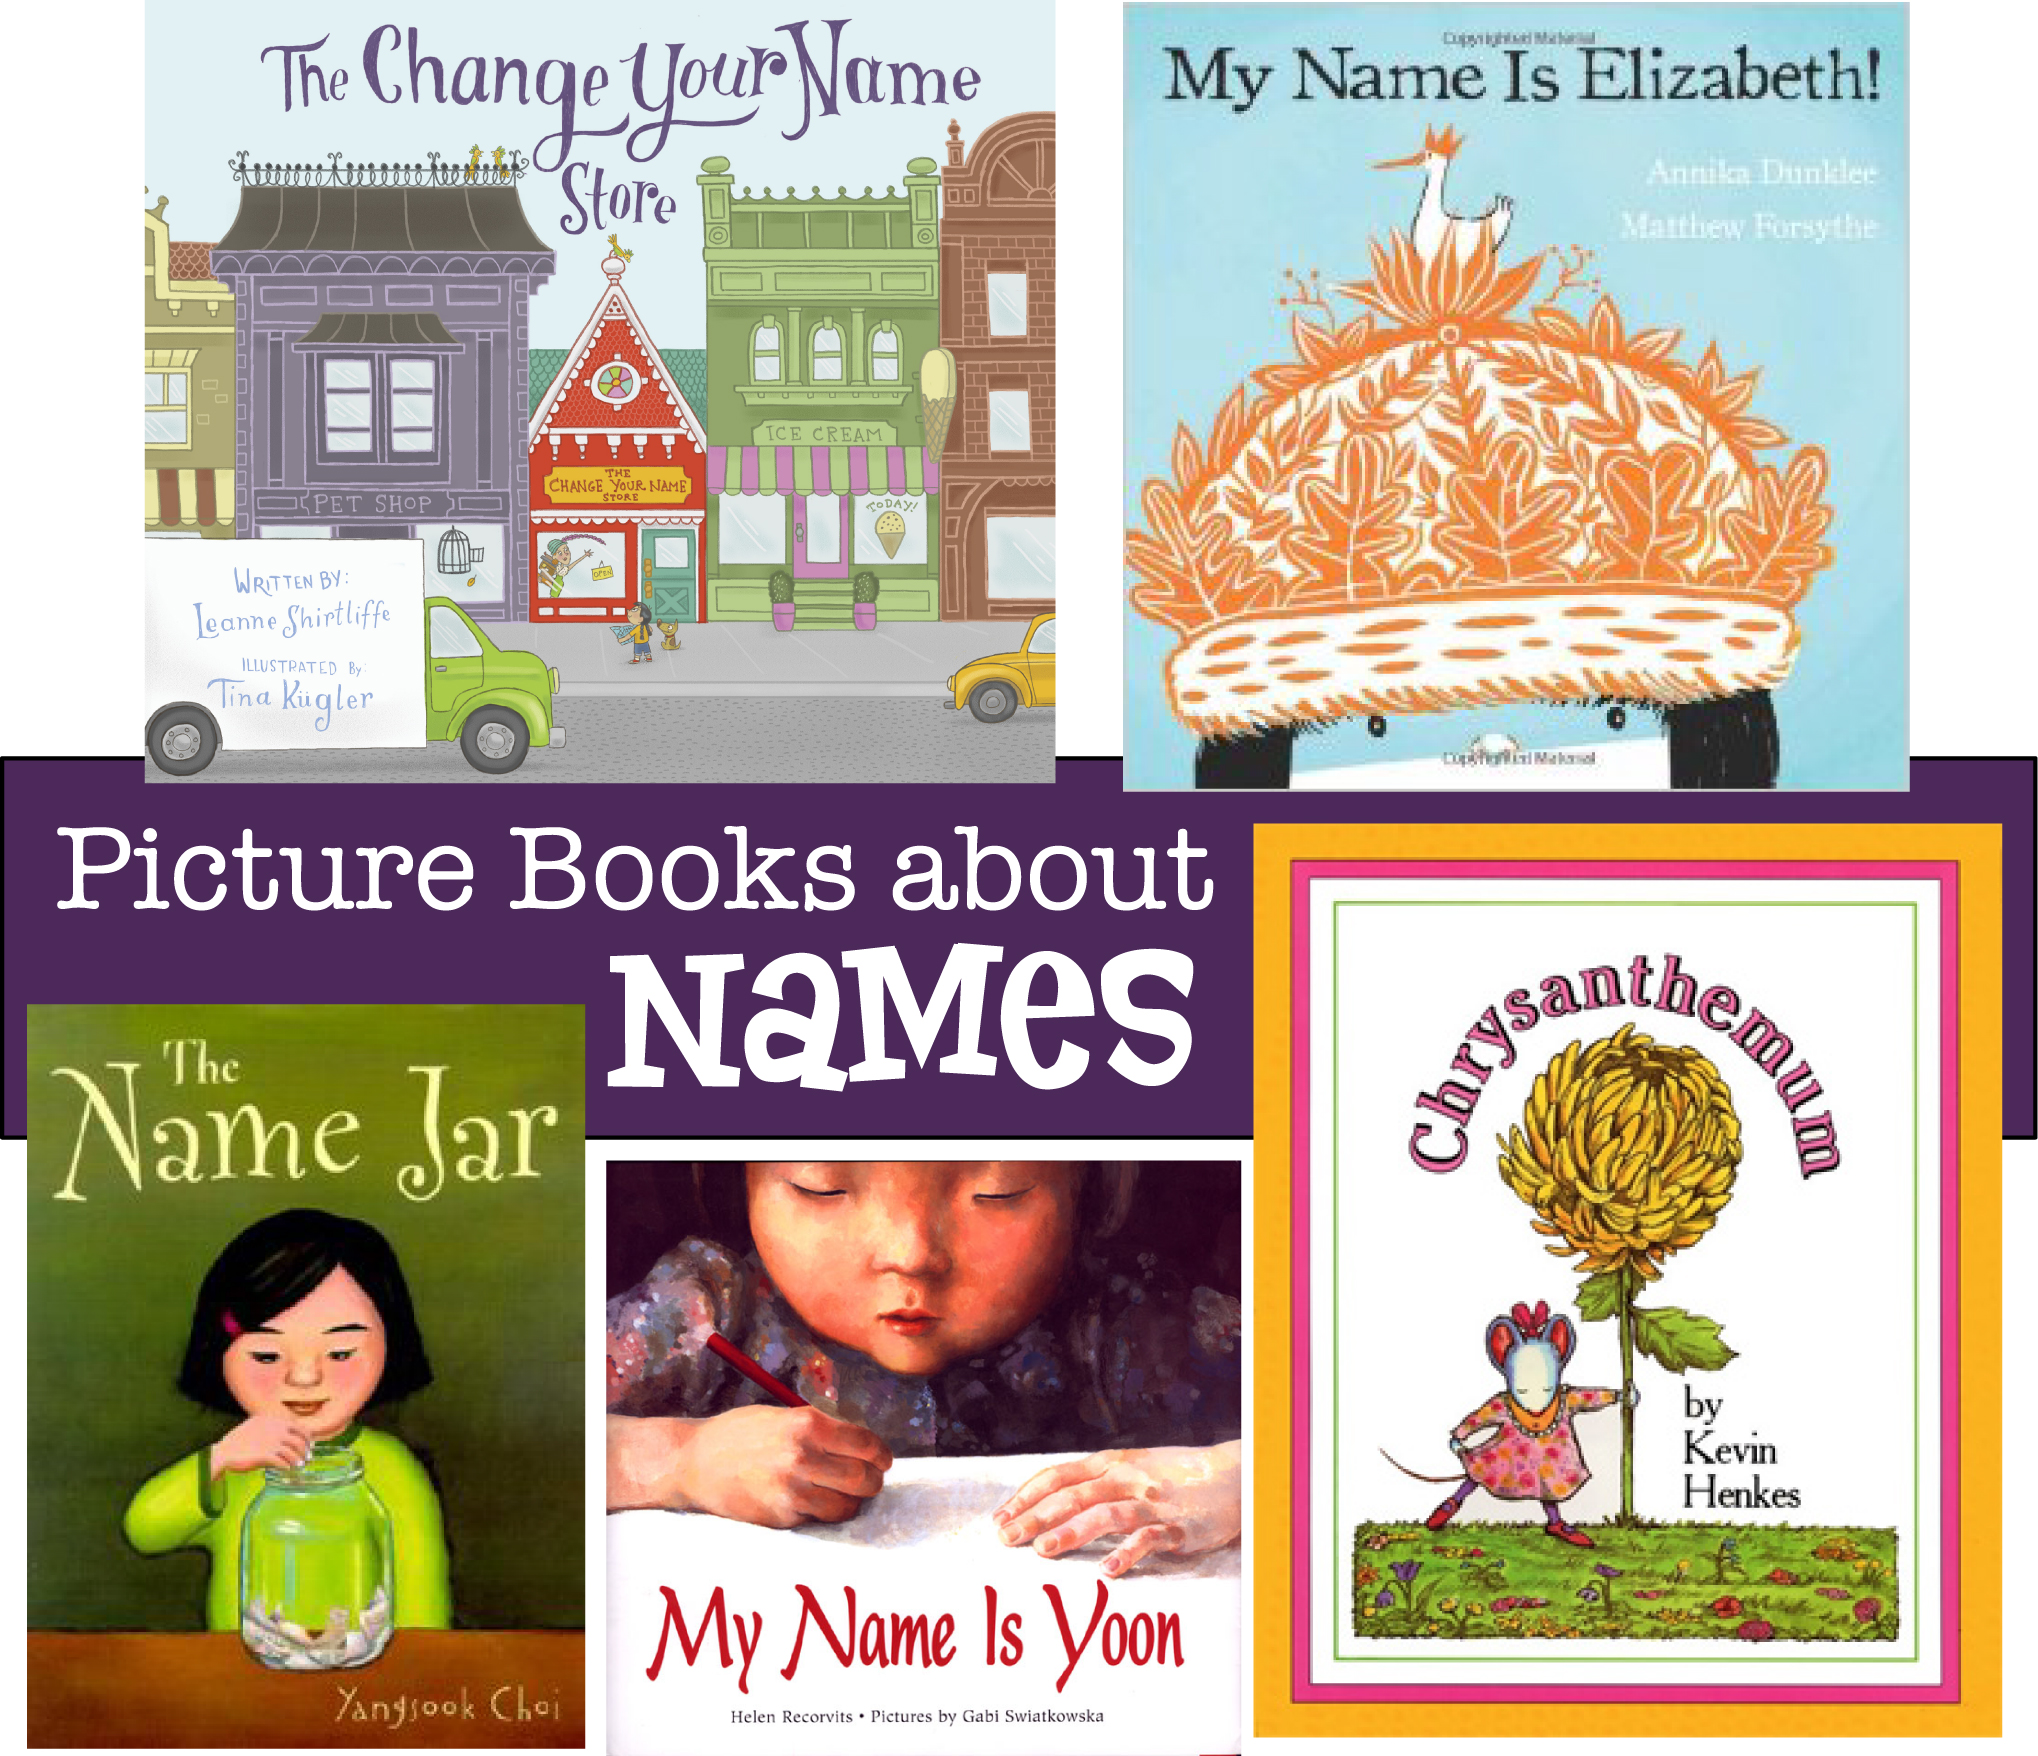 More Books About Names